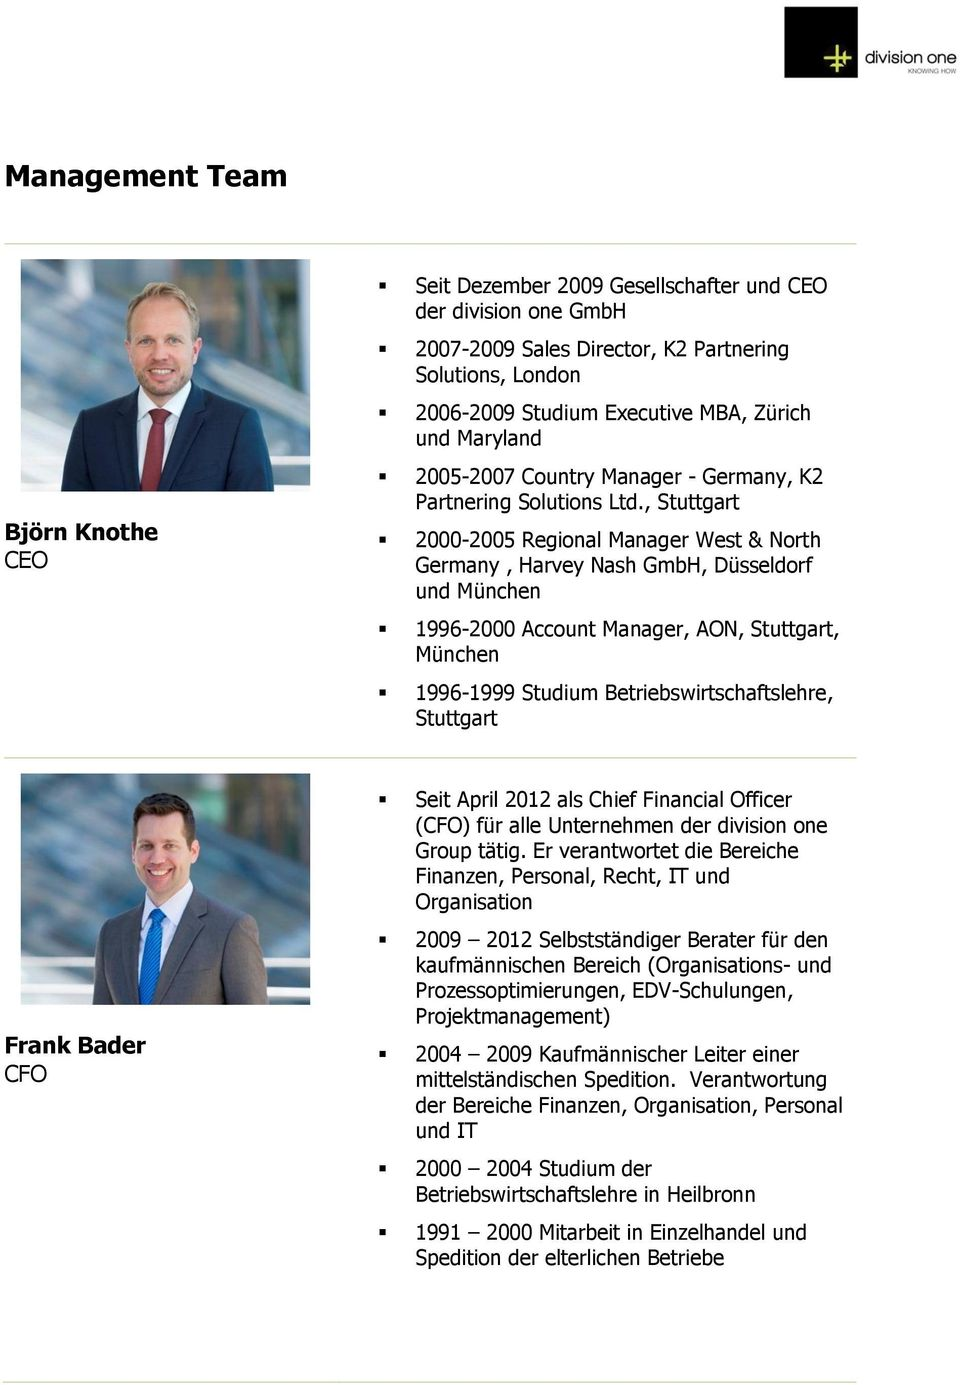 , Stuttgart 2000-2005 Regional Manager West & North Germany, Harvey Nash GmbH, Düsseldorf und München 1996-2000 Account Manager, AON, Stuttgart, München 1996-1999 Studium Betriebswirtschaftslehre,